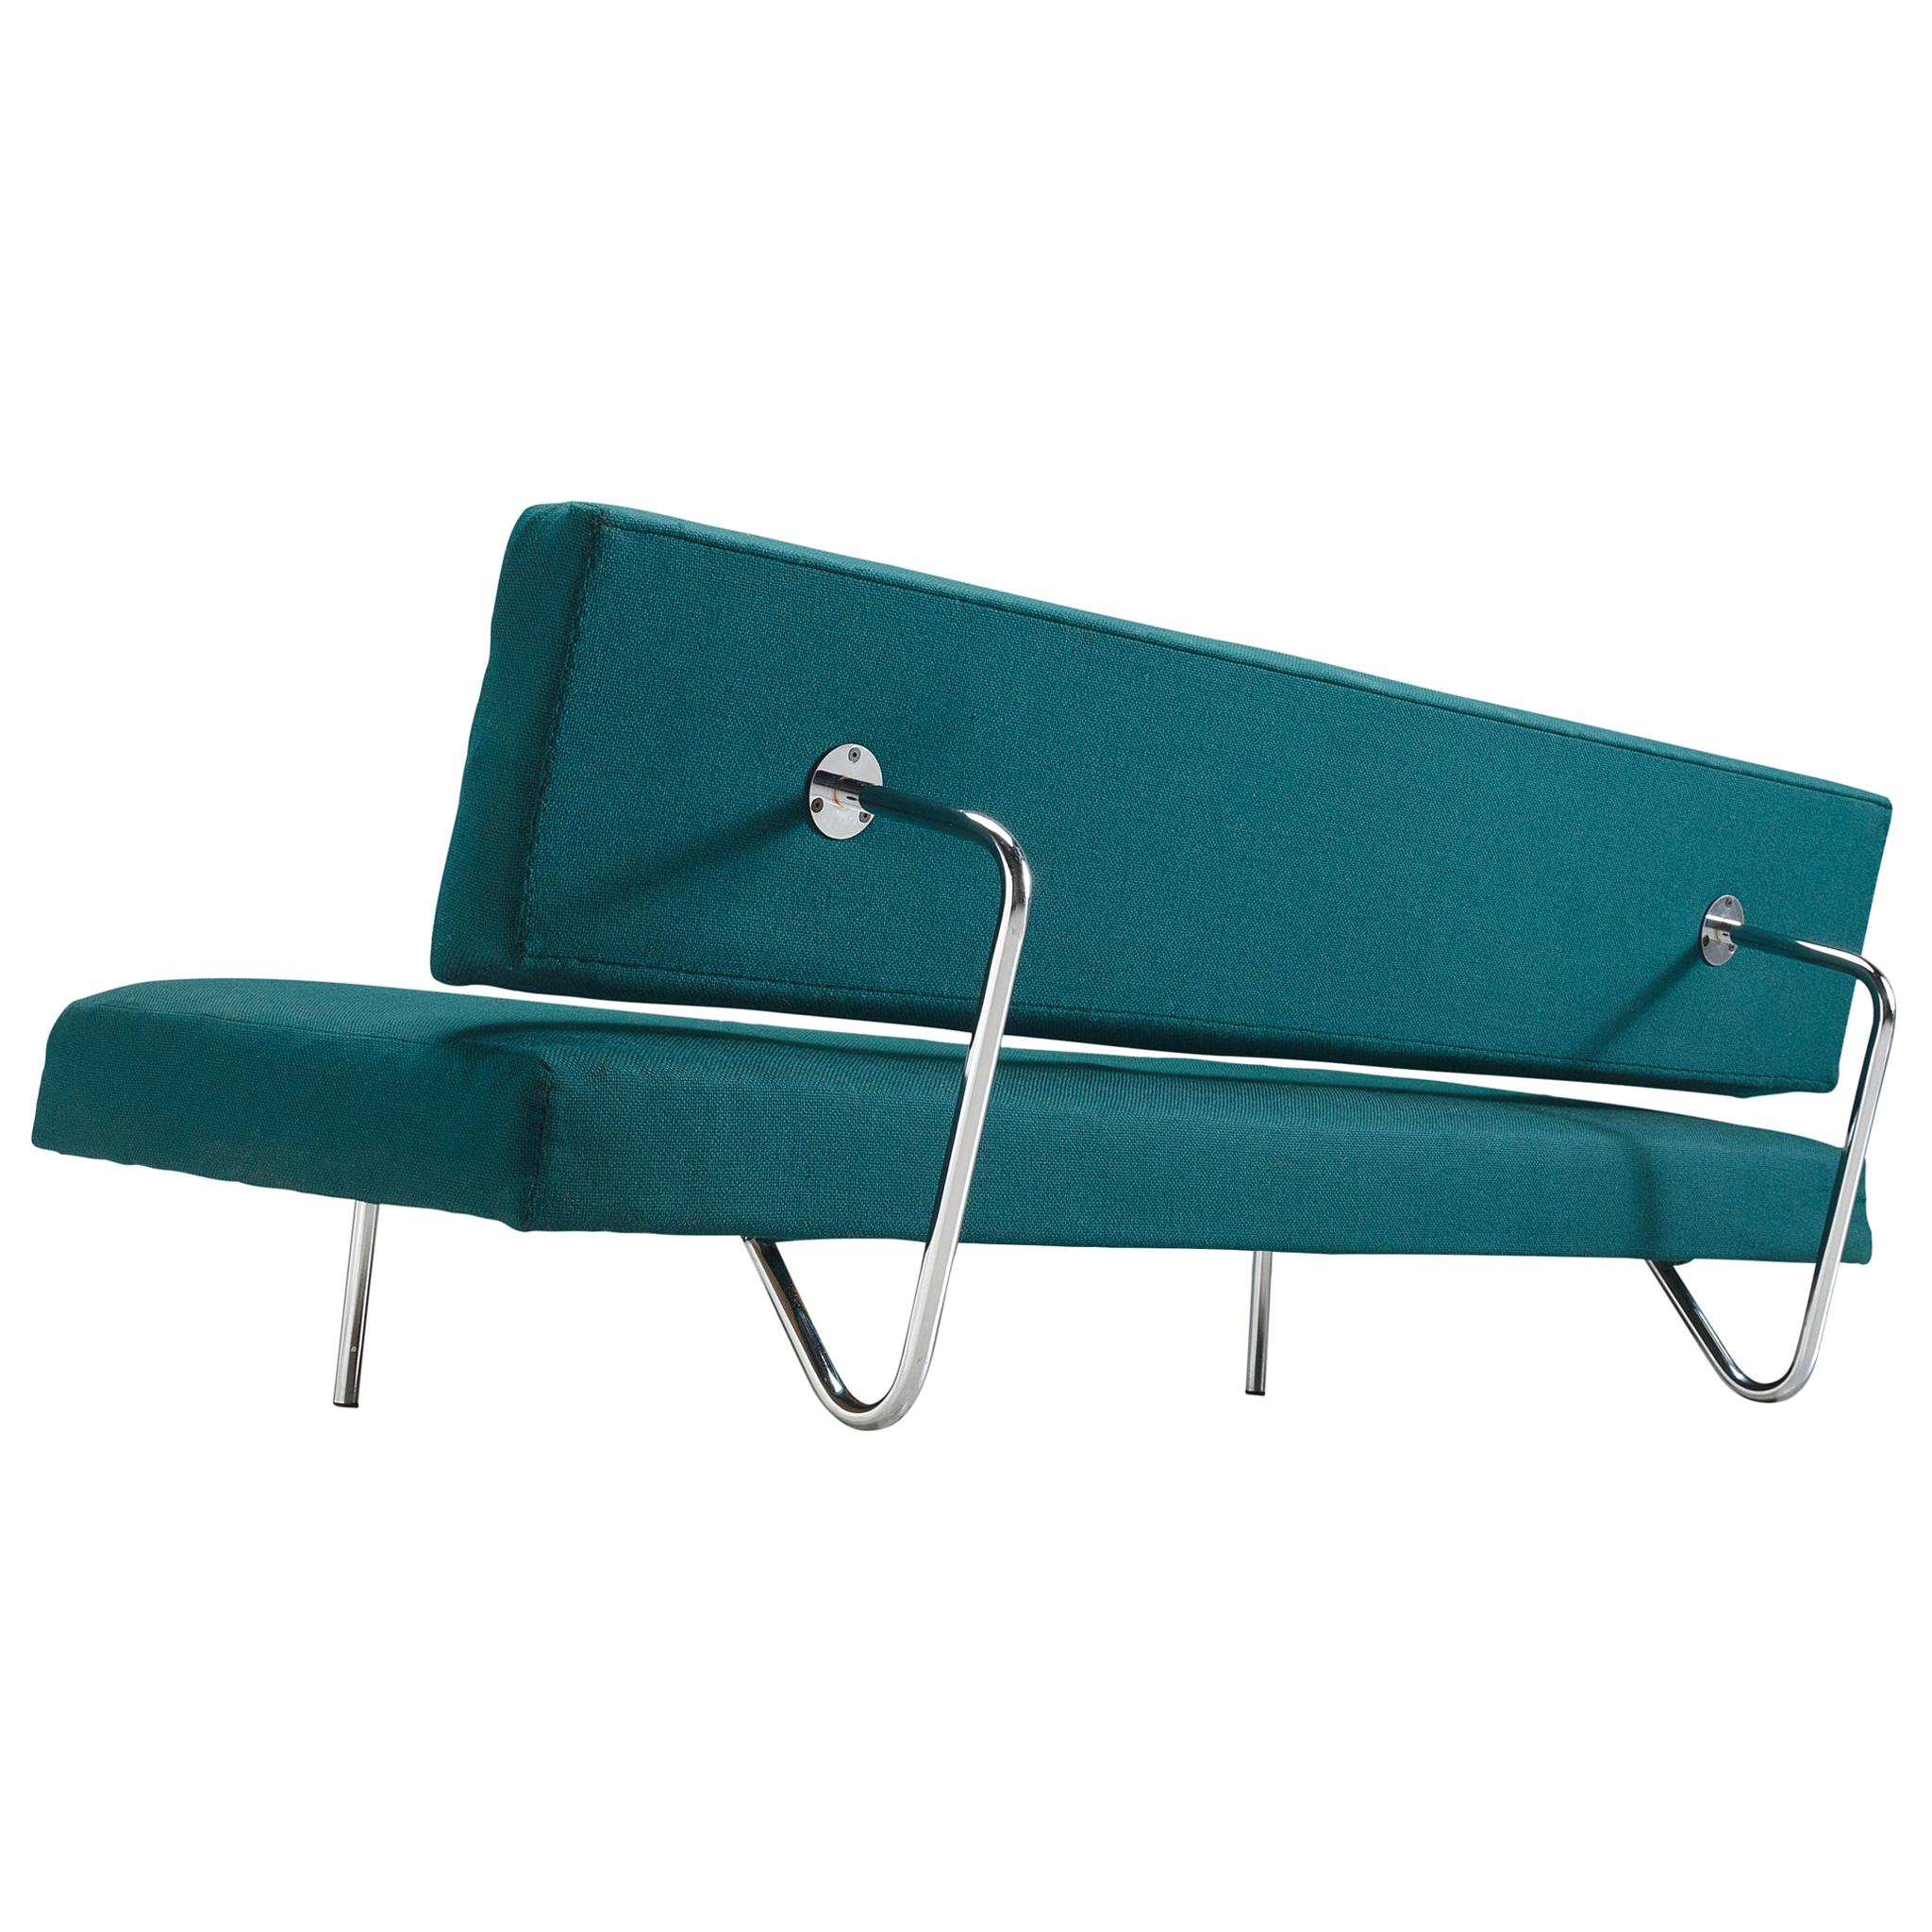 Ernst Ambühler for Teo Jacob Sofa EA-616 in Fabric Upholstery and Steel